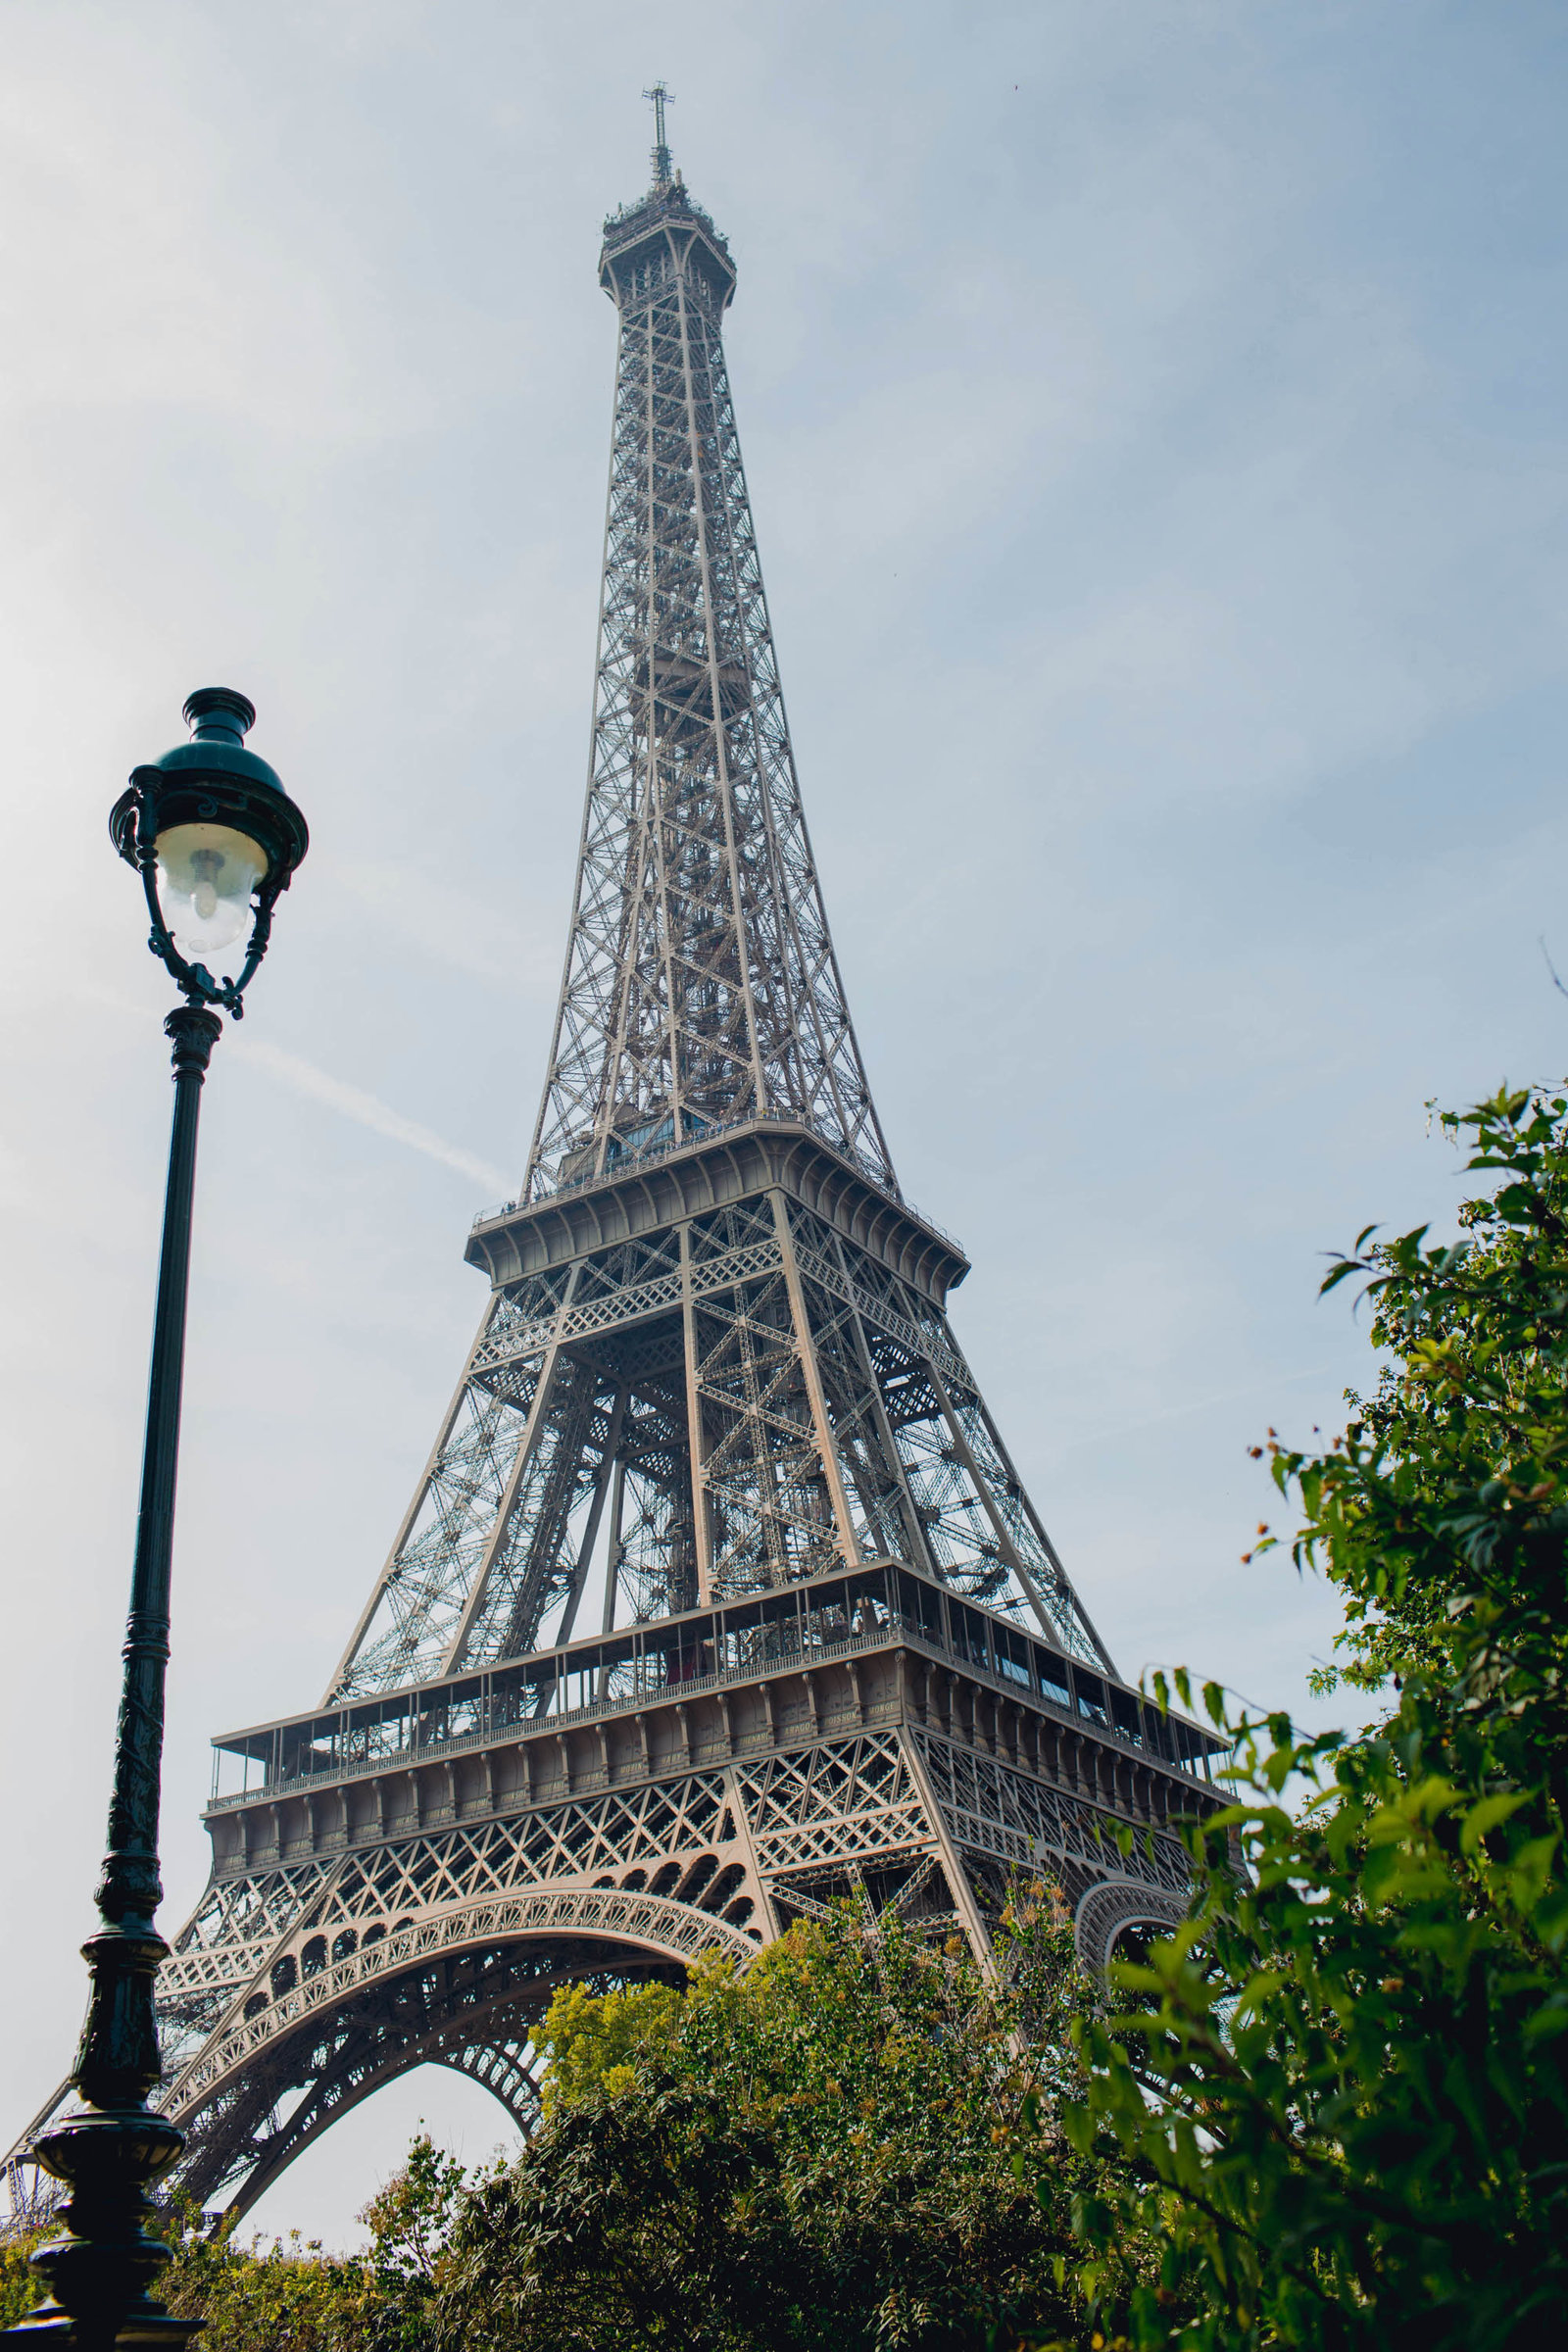 eiffel-tower-paris-france-travel-destination-wedding-kate-timbers-photography-1728